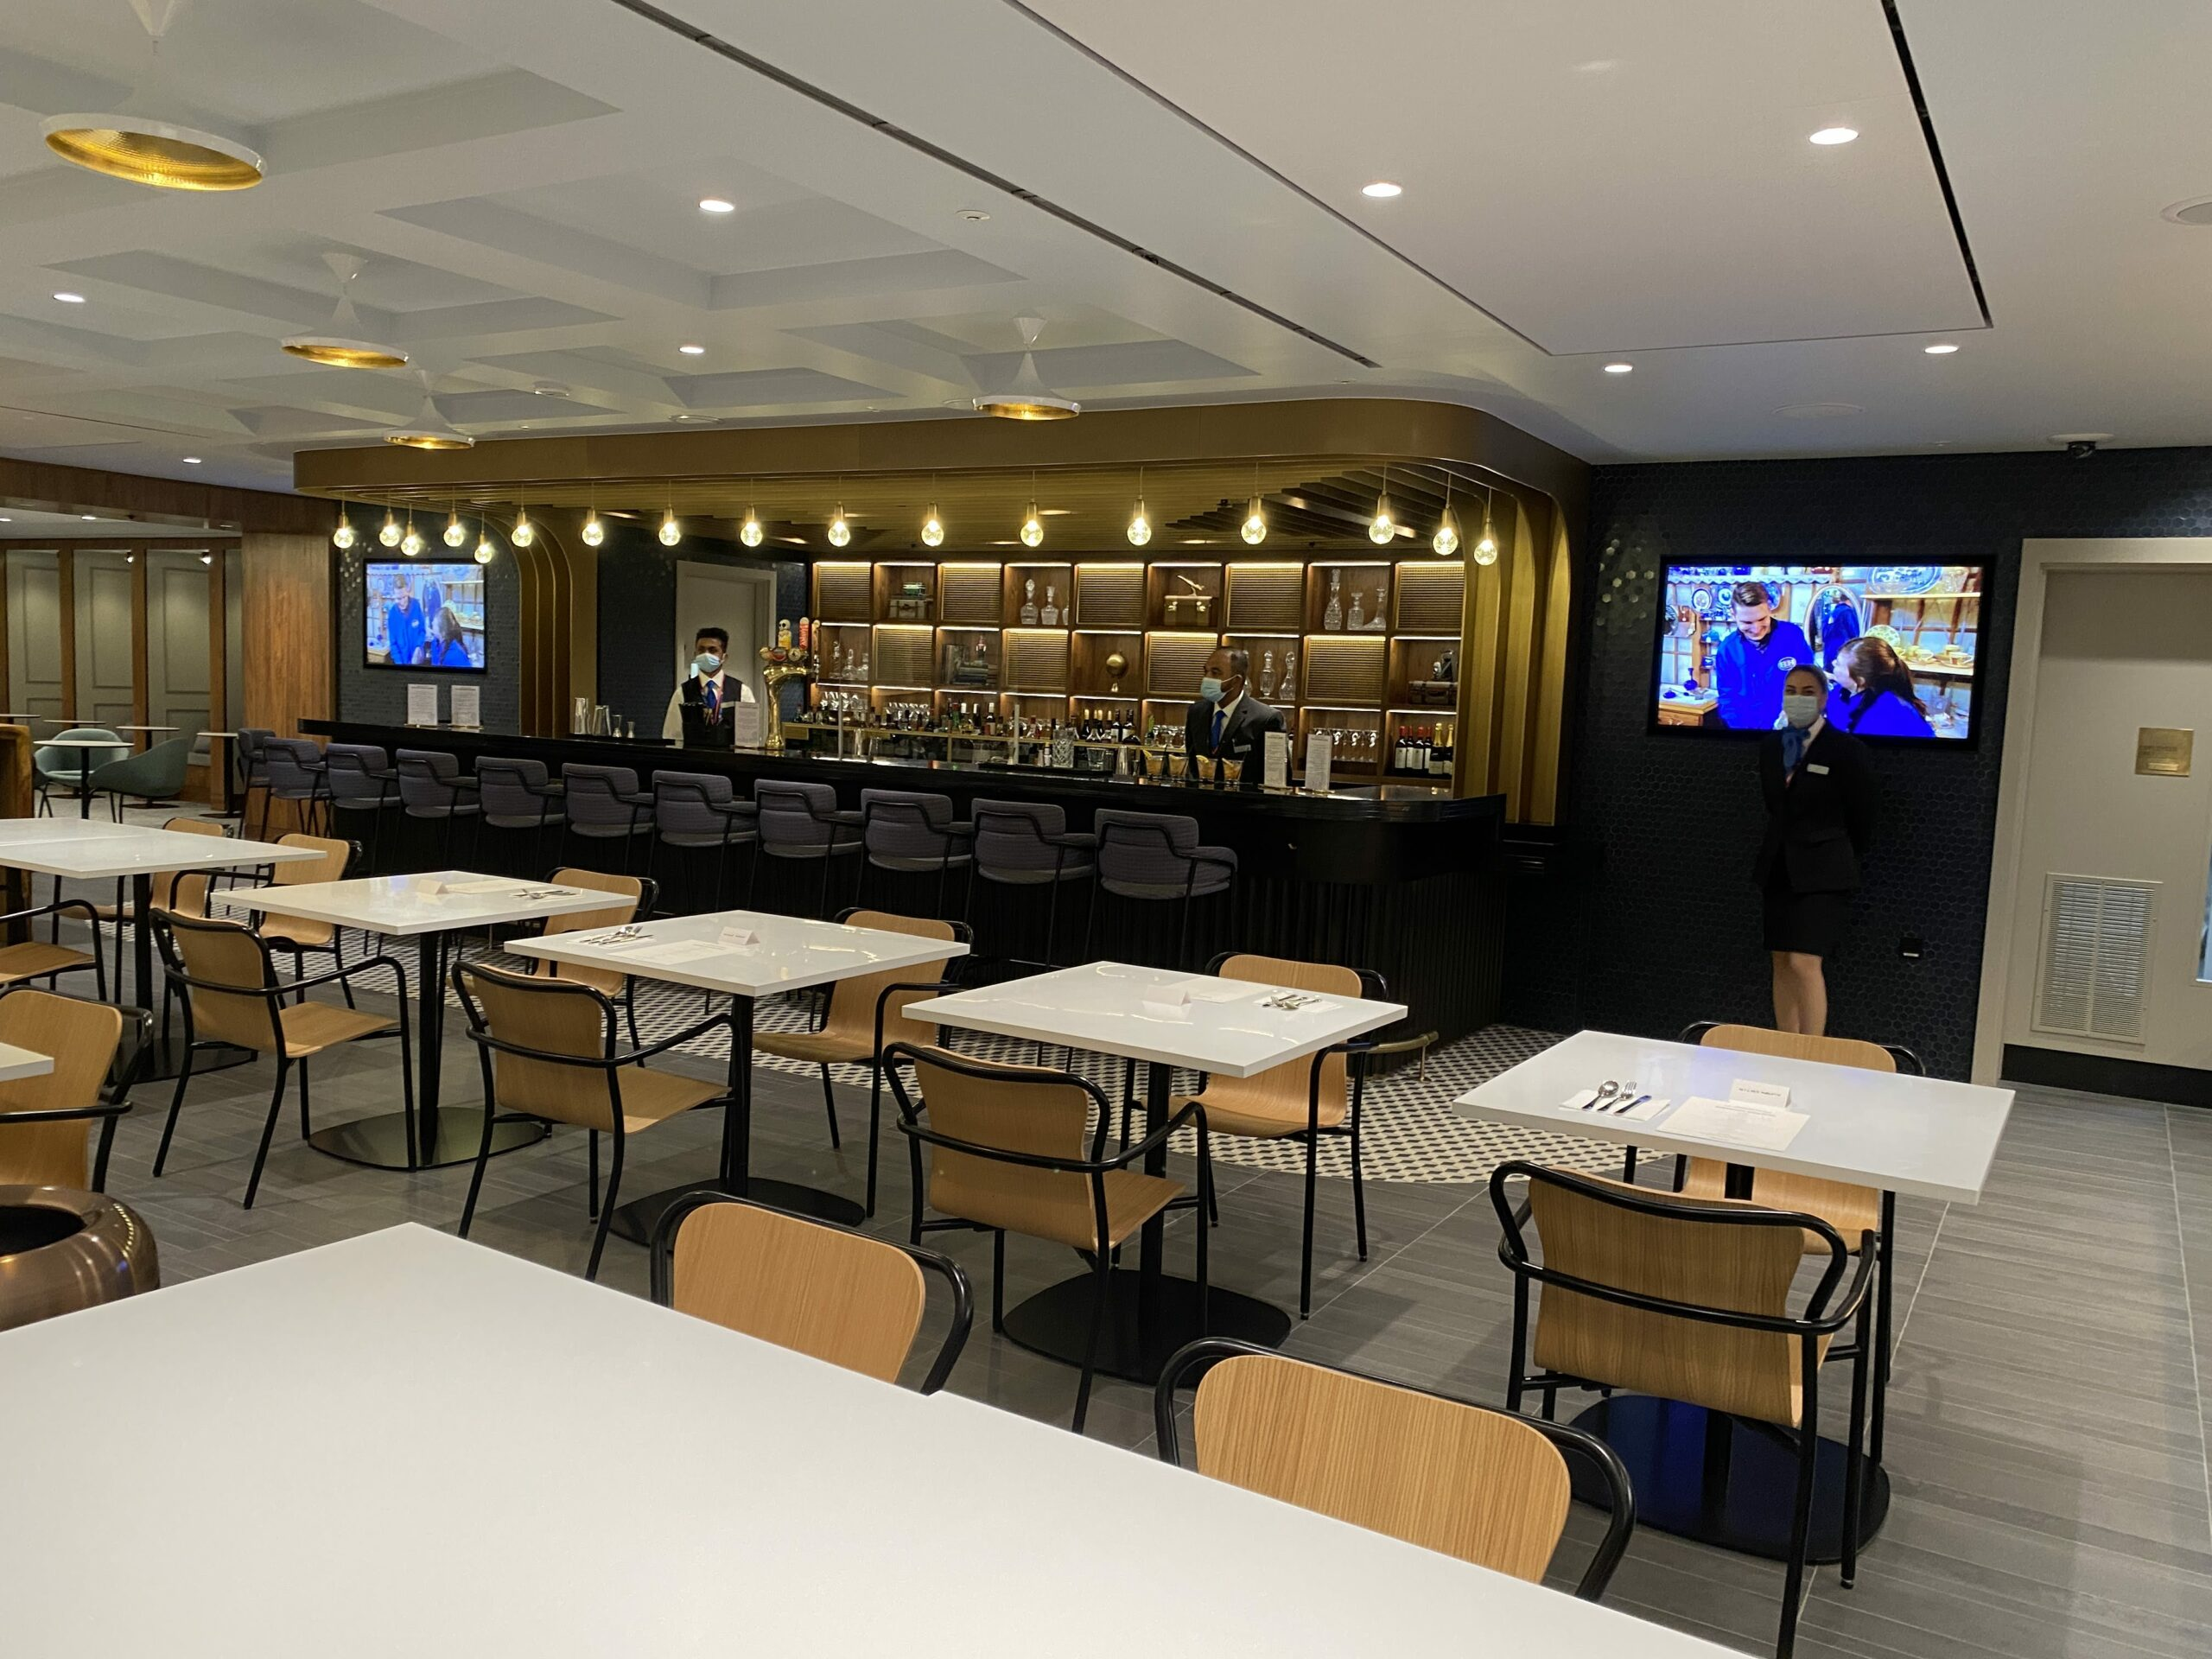 American Express New Centurion Lounge at London Heathrow T3 bar and restaurant